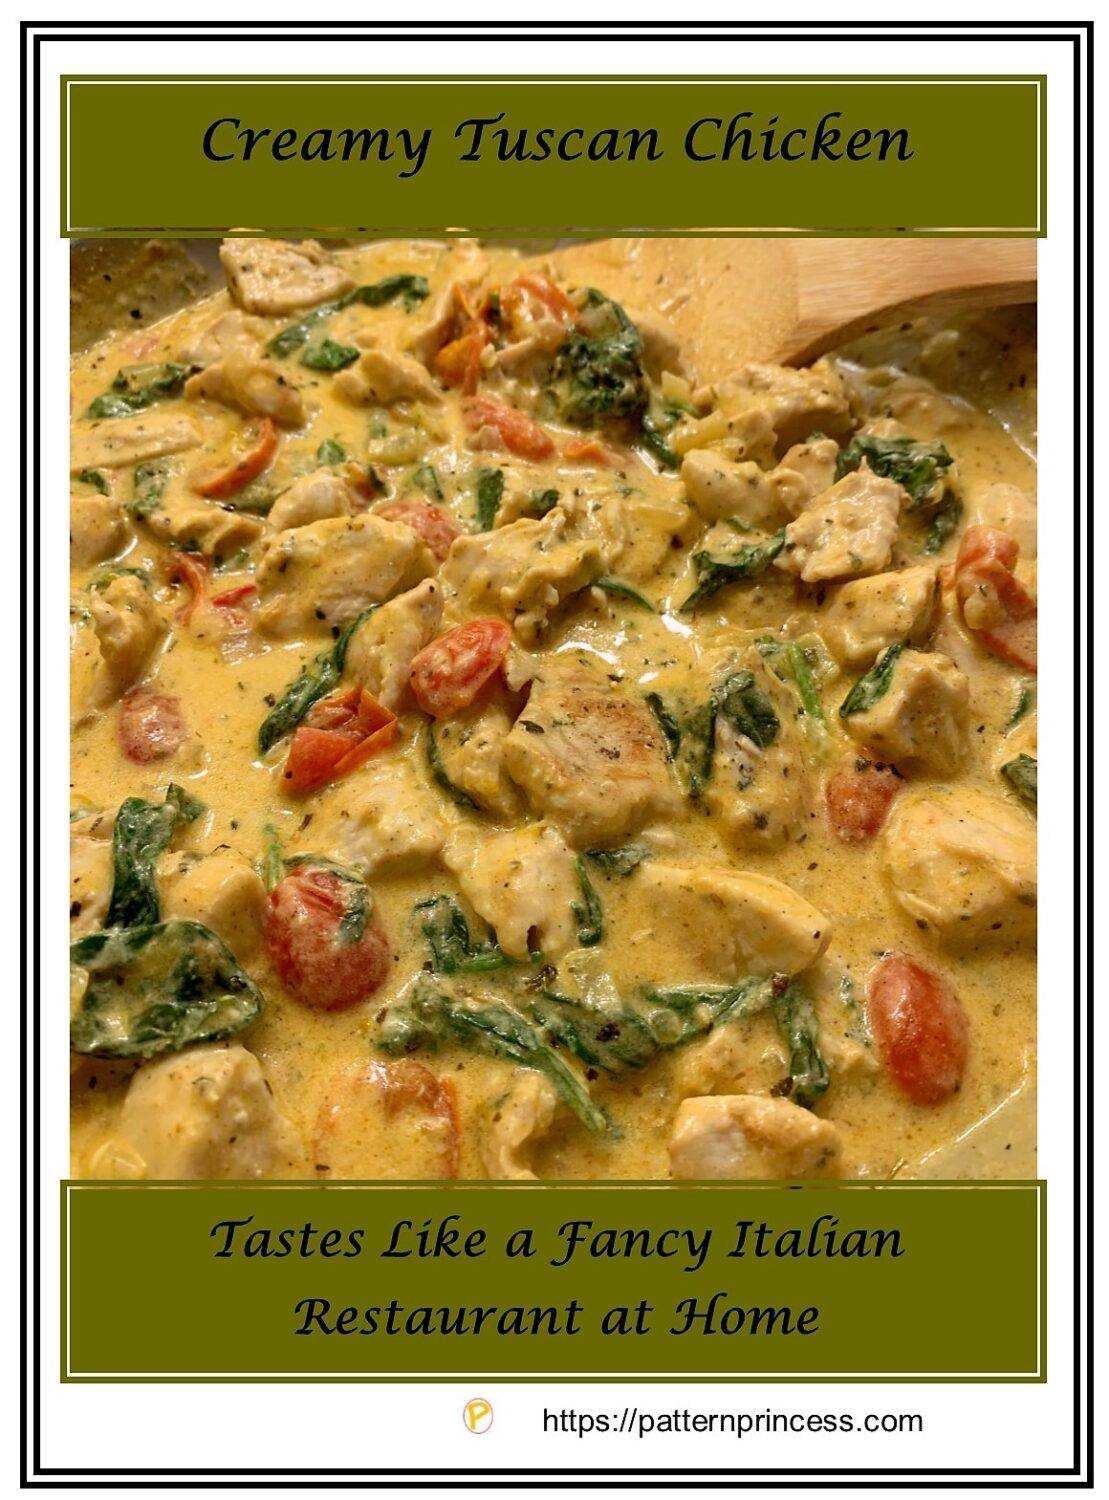 Creamy Tuscan Chicken Recipe